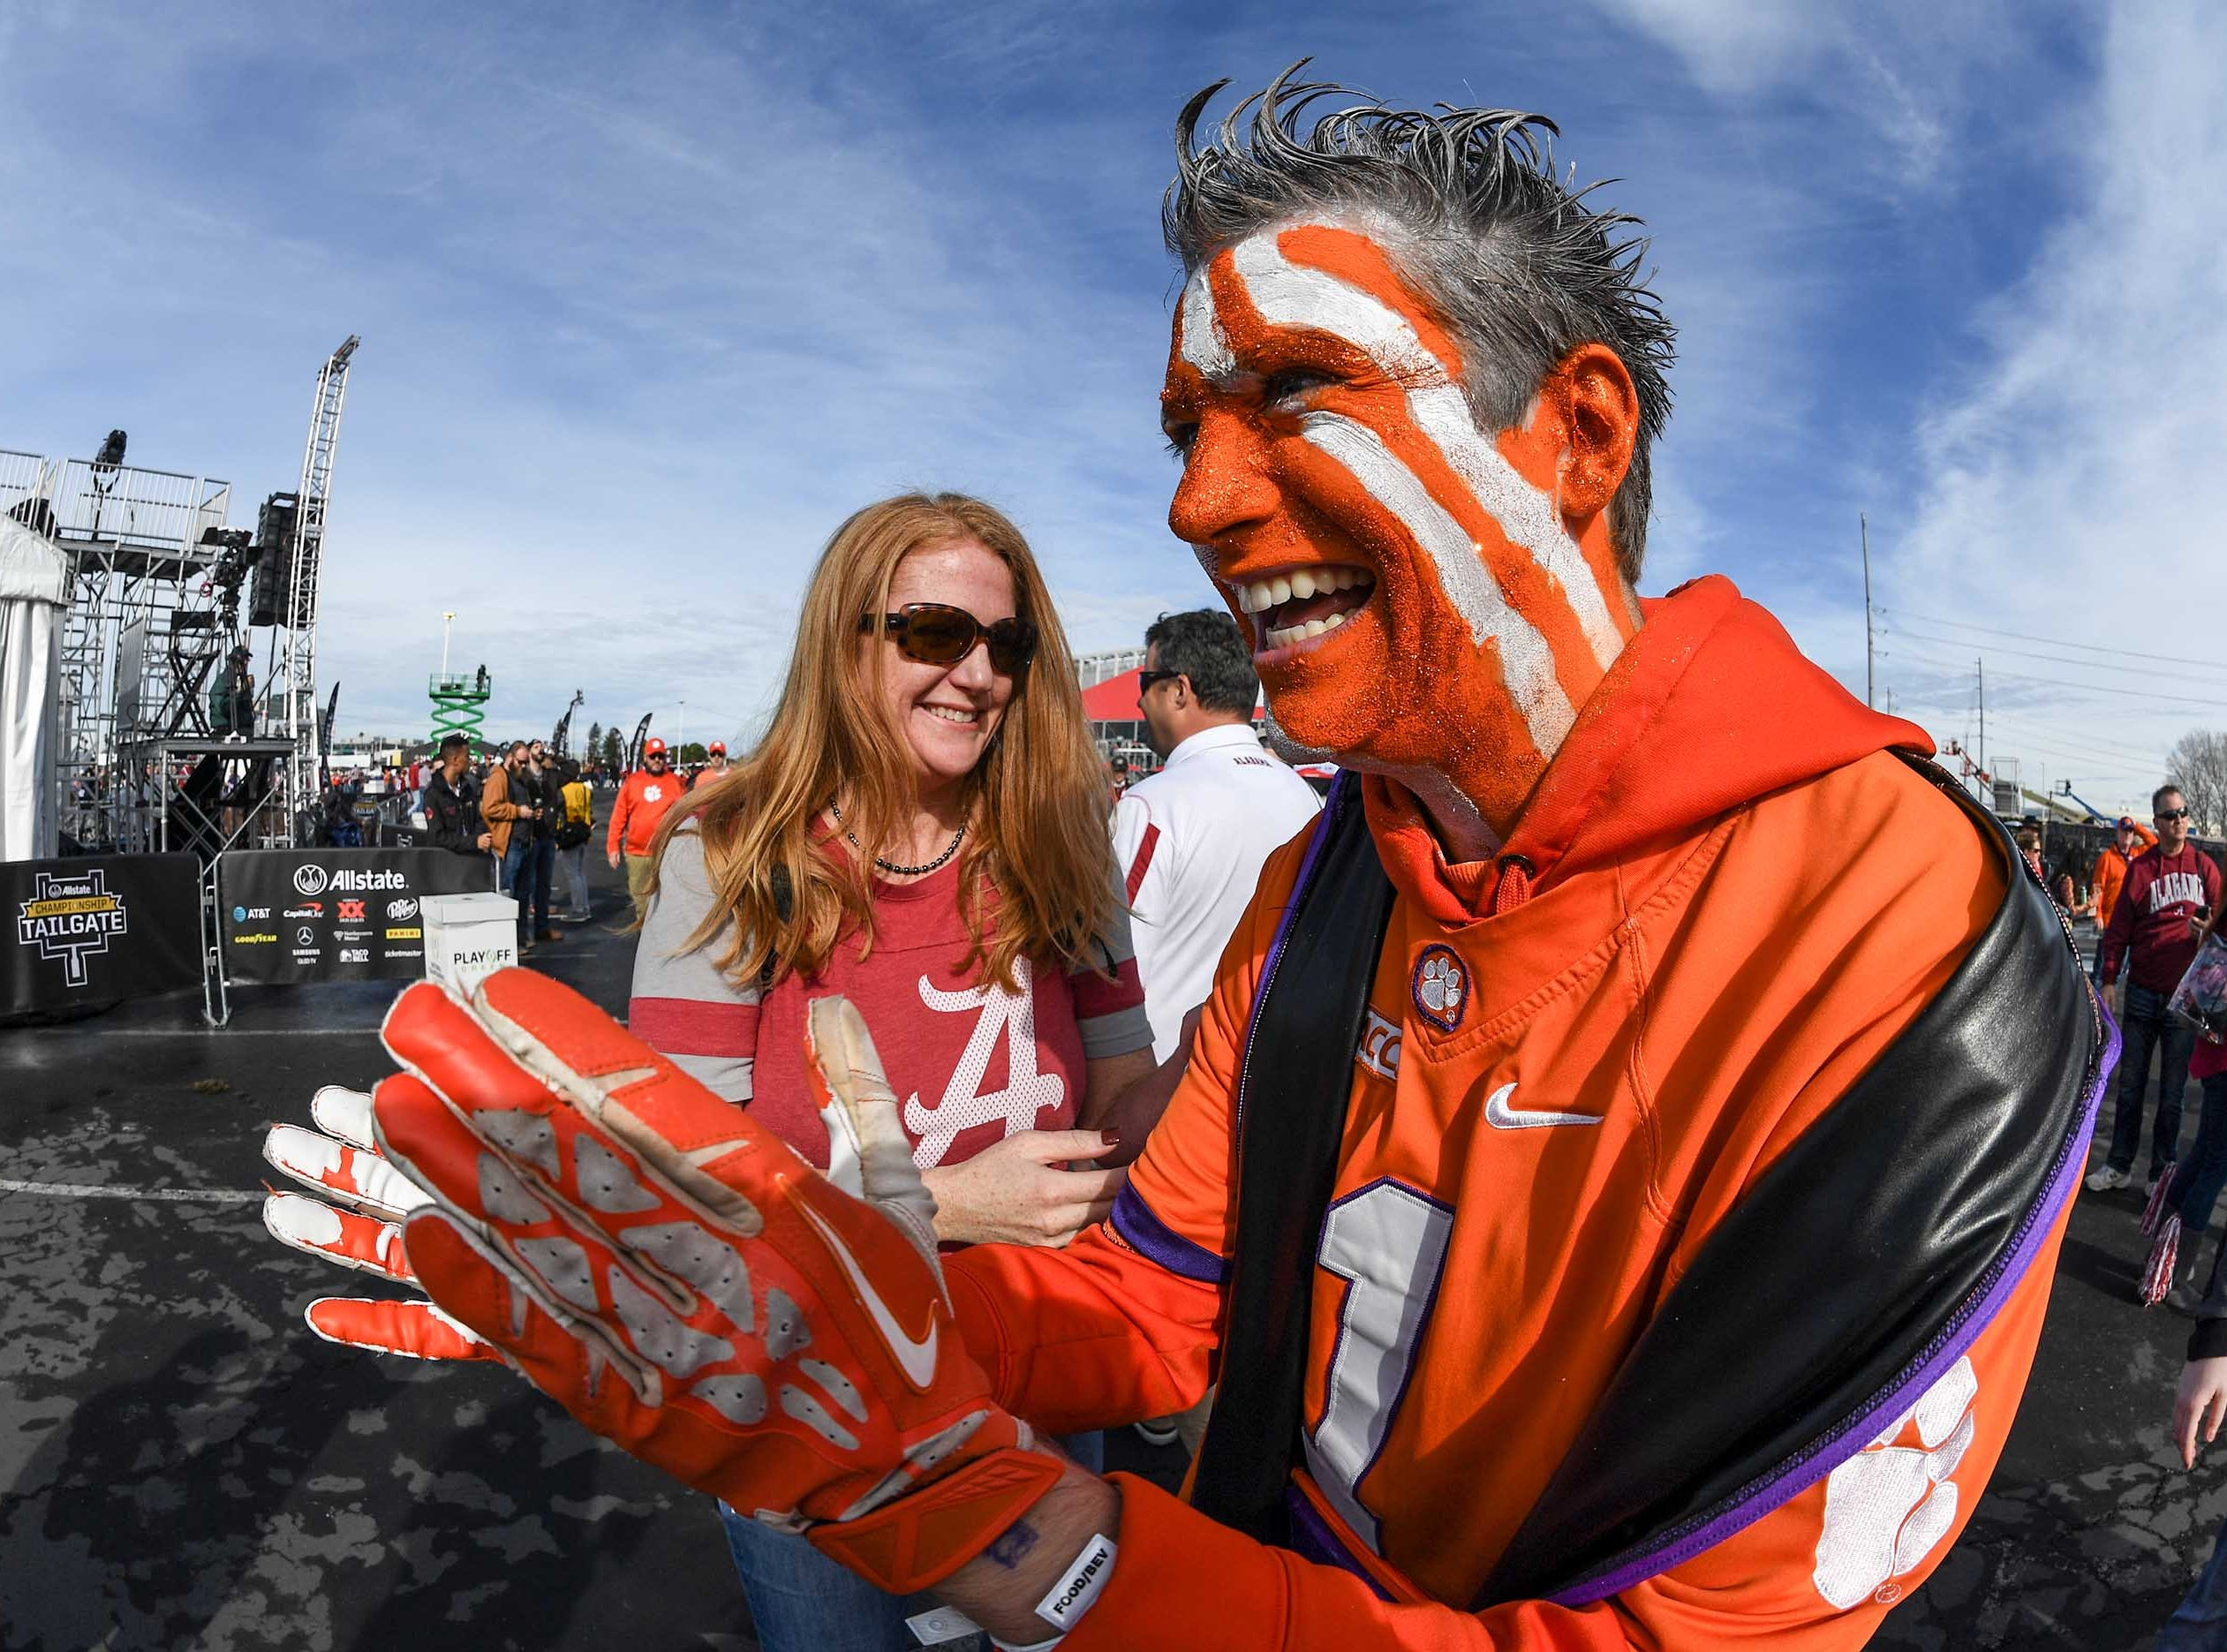 Clemson fan Peter Rowan, right, calling himself MVPeter, is greeted by an Alabama fan as he participates at the College Football Championship Playoff Tailgate outside Levi's Stadium in Santa Clara, California Monday, January 7, 2019.